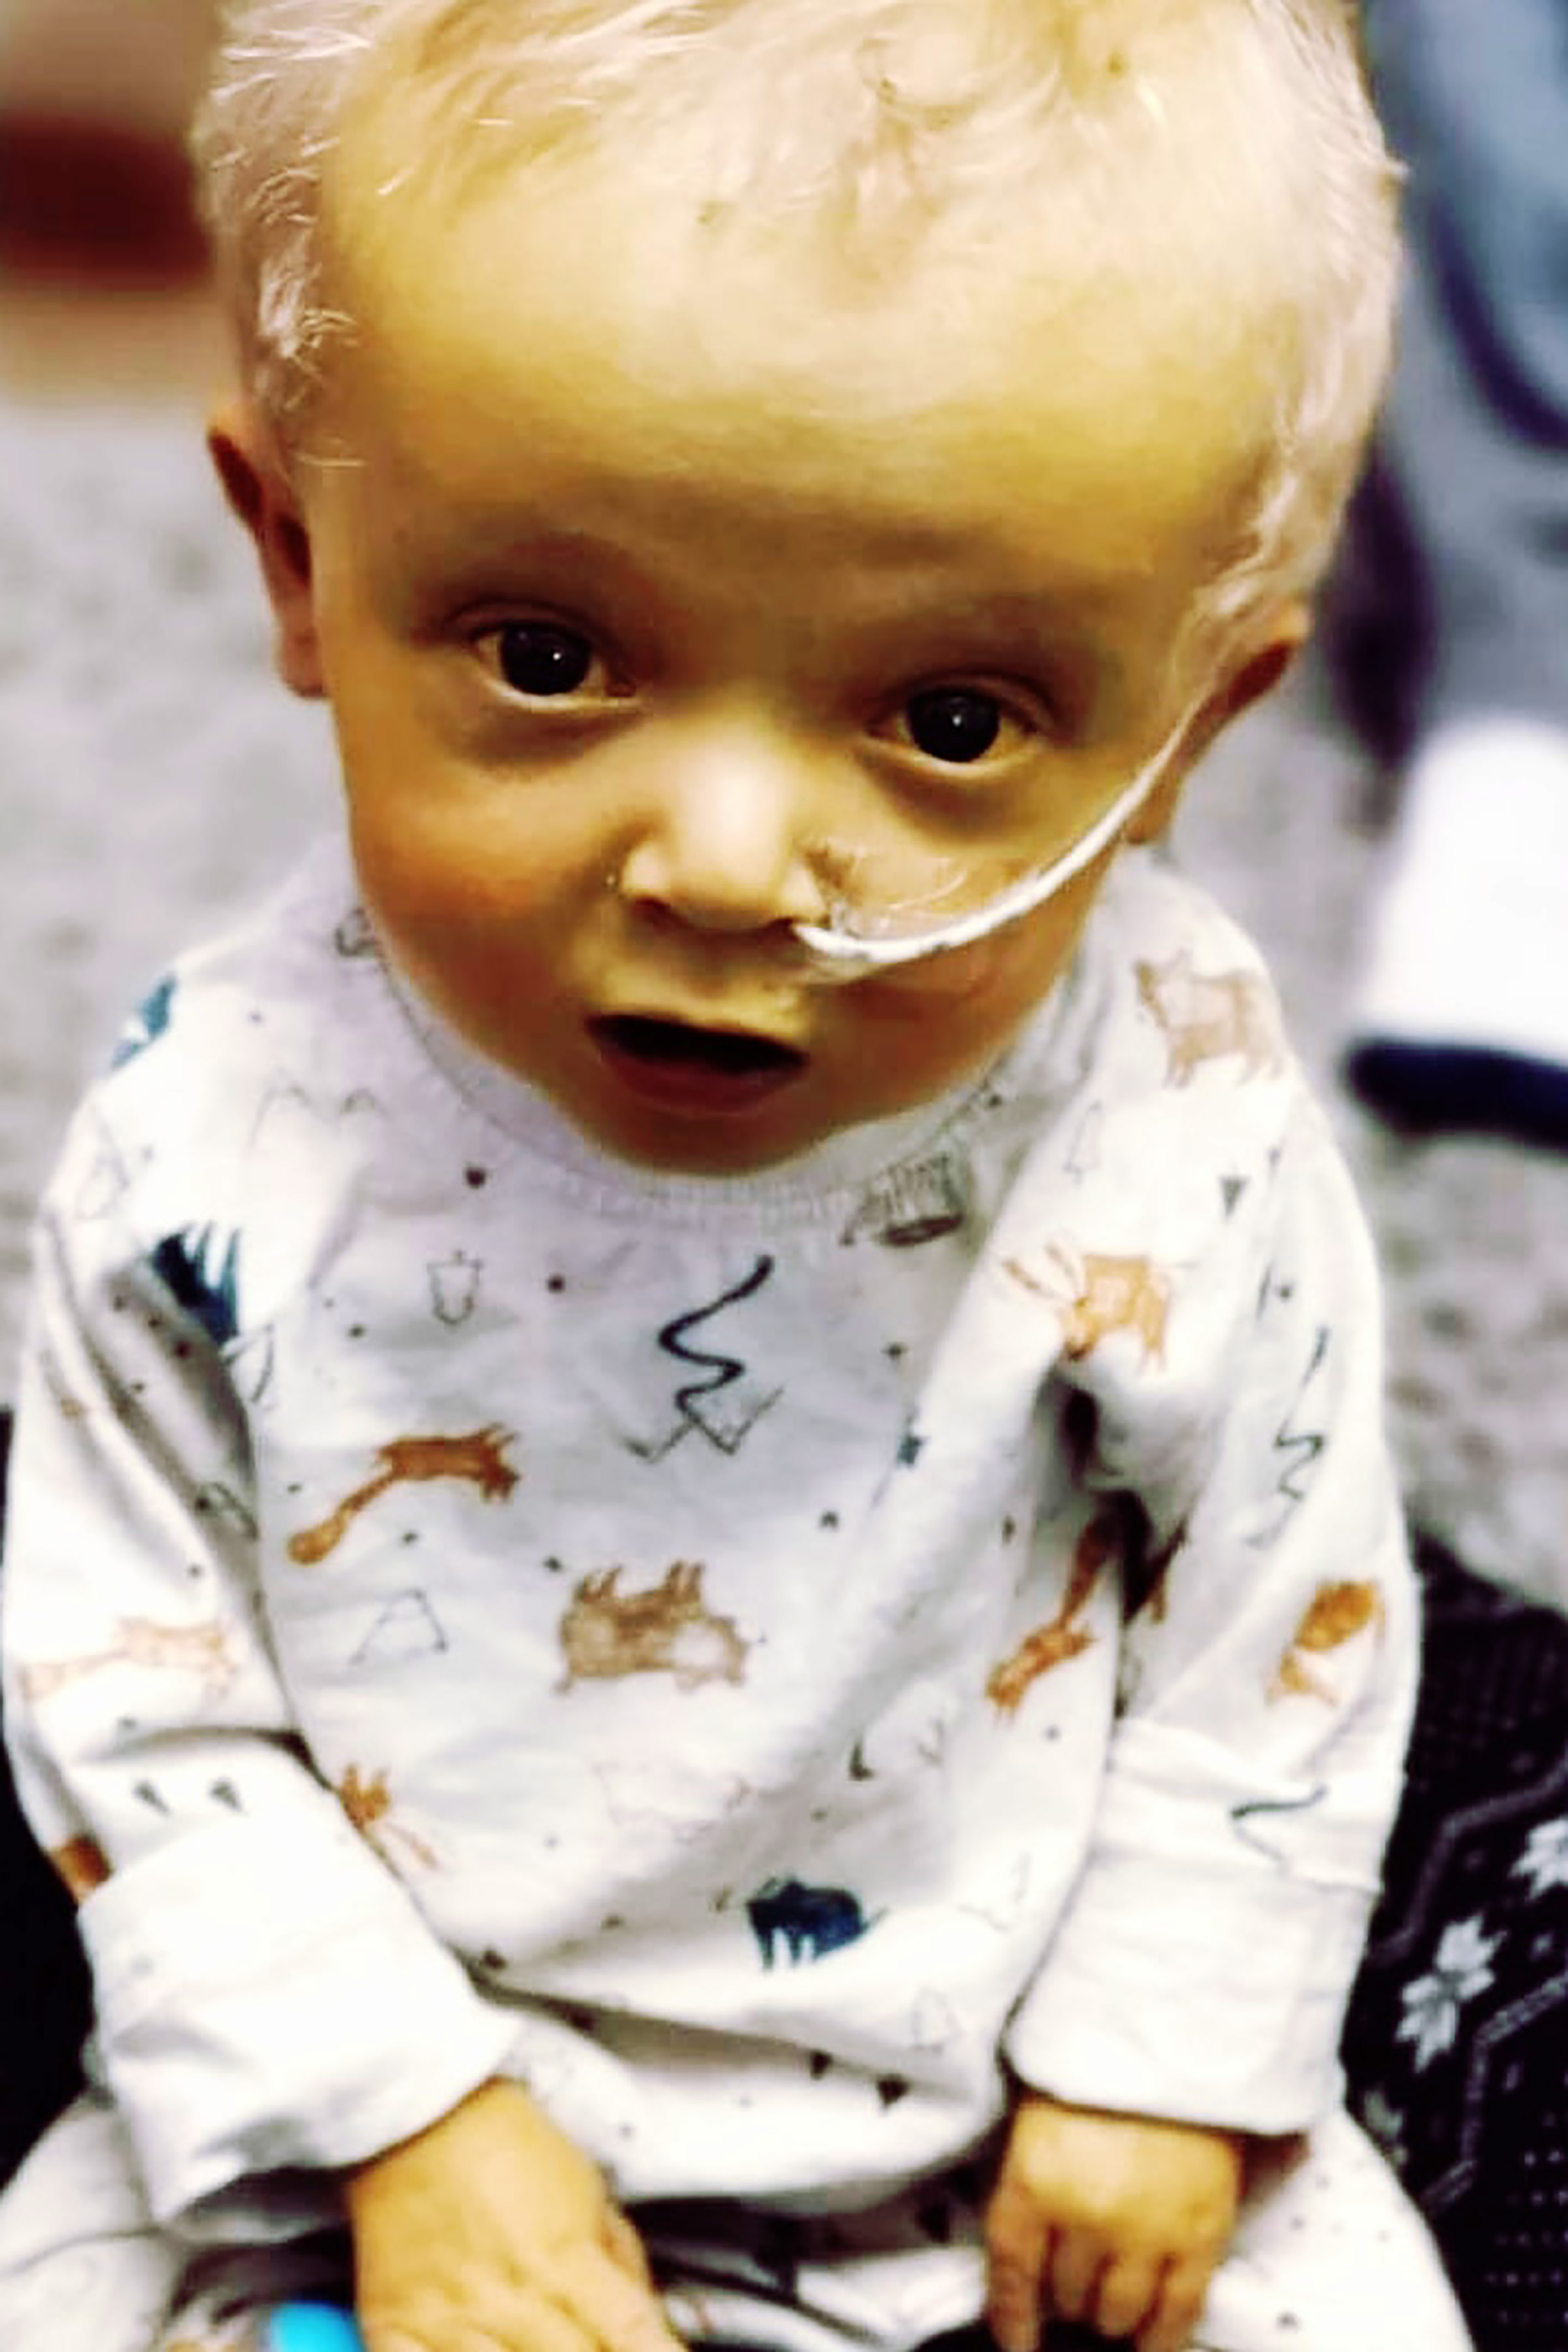 boy with rare condition trolled for appearance yellow tinge